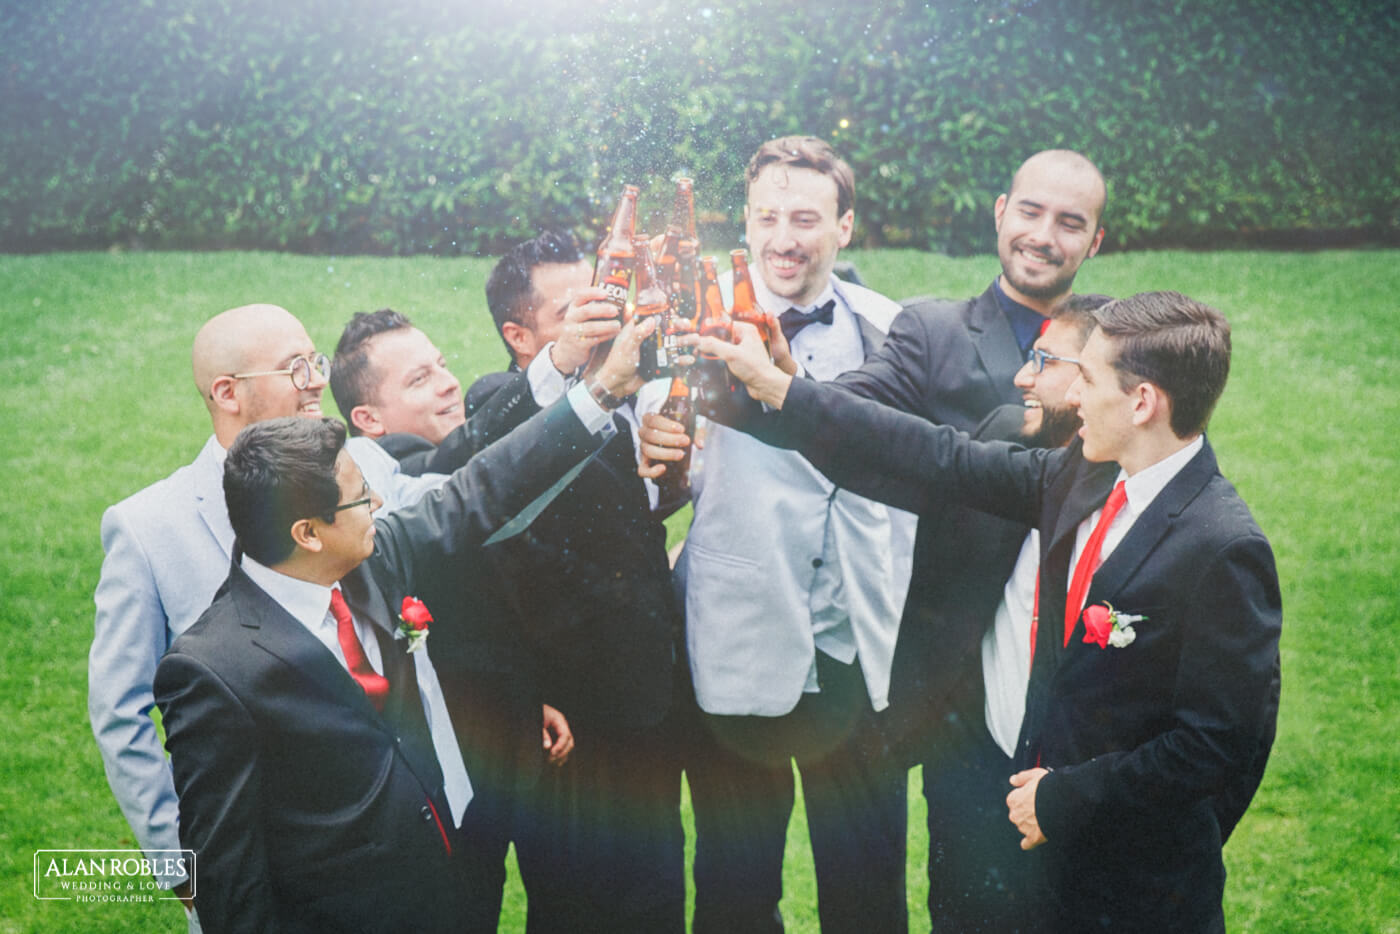 Brindis Boda - Alan Robles Wedding & Love Photographer - Fotografo Bodas Guadalajara